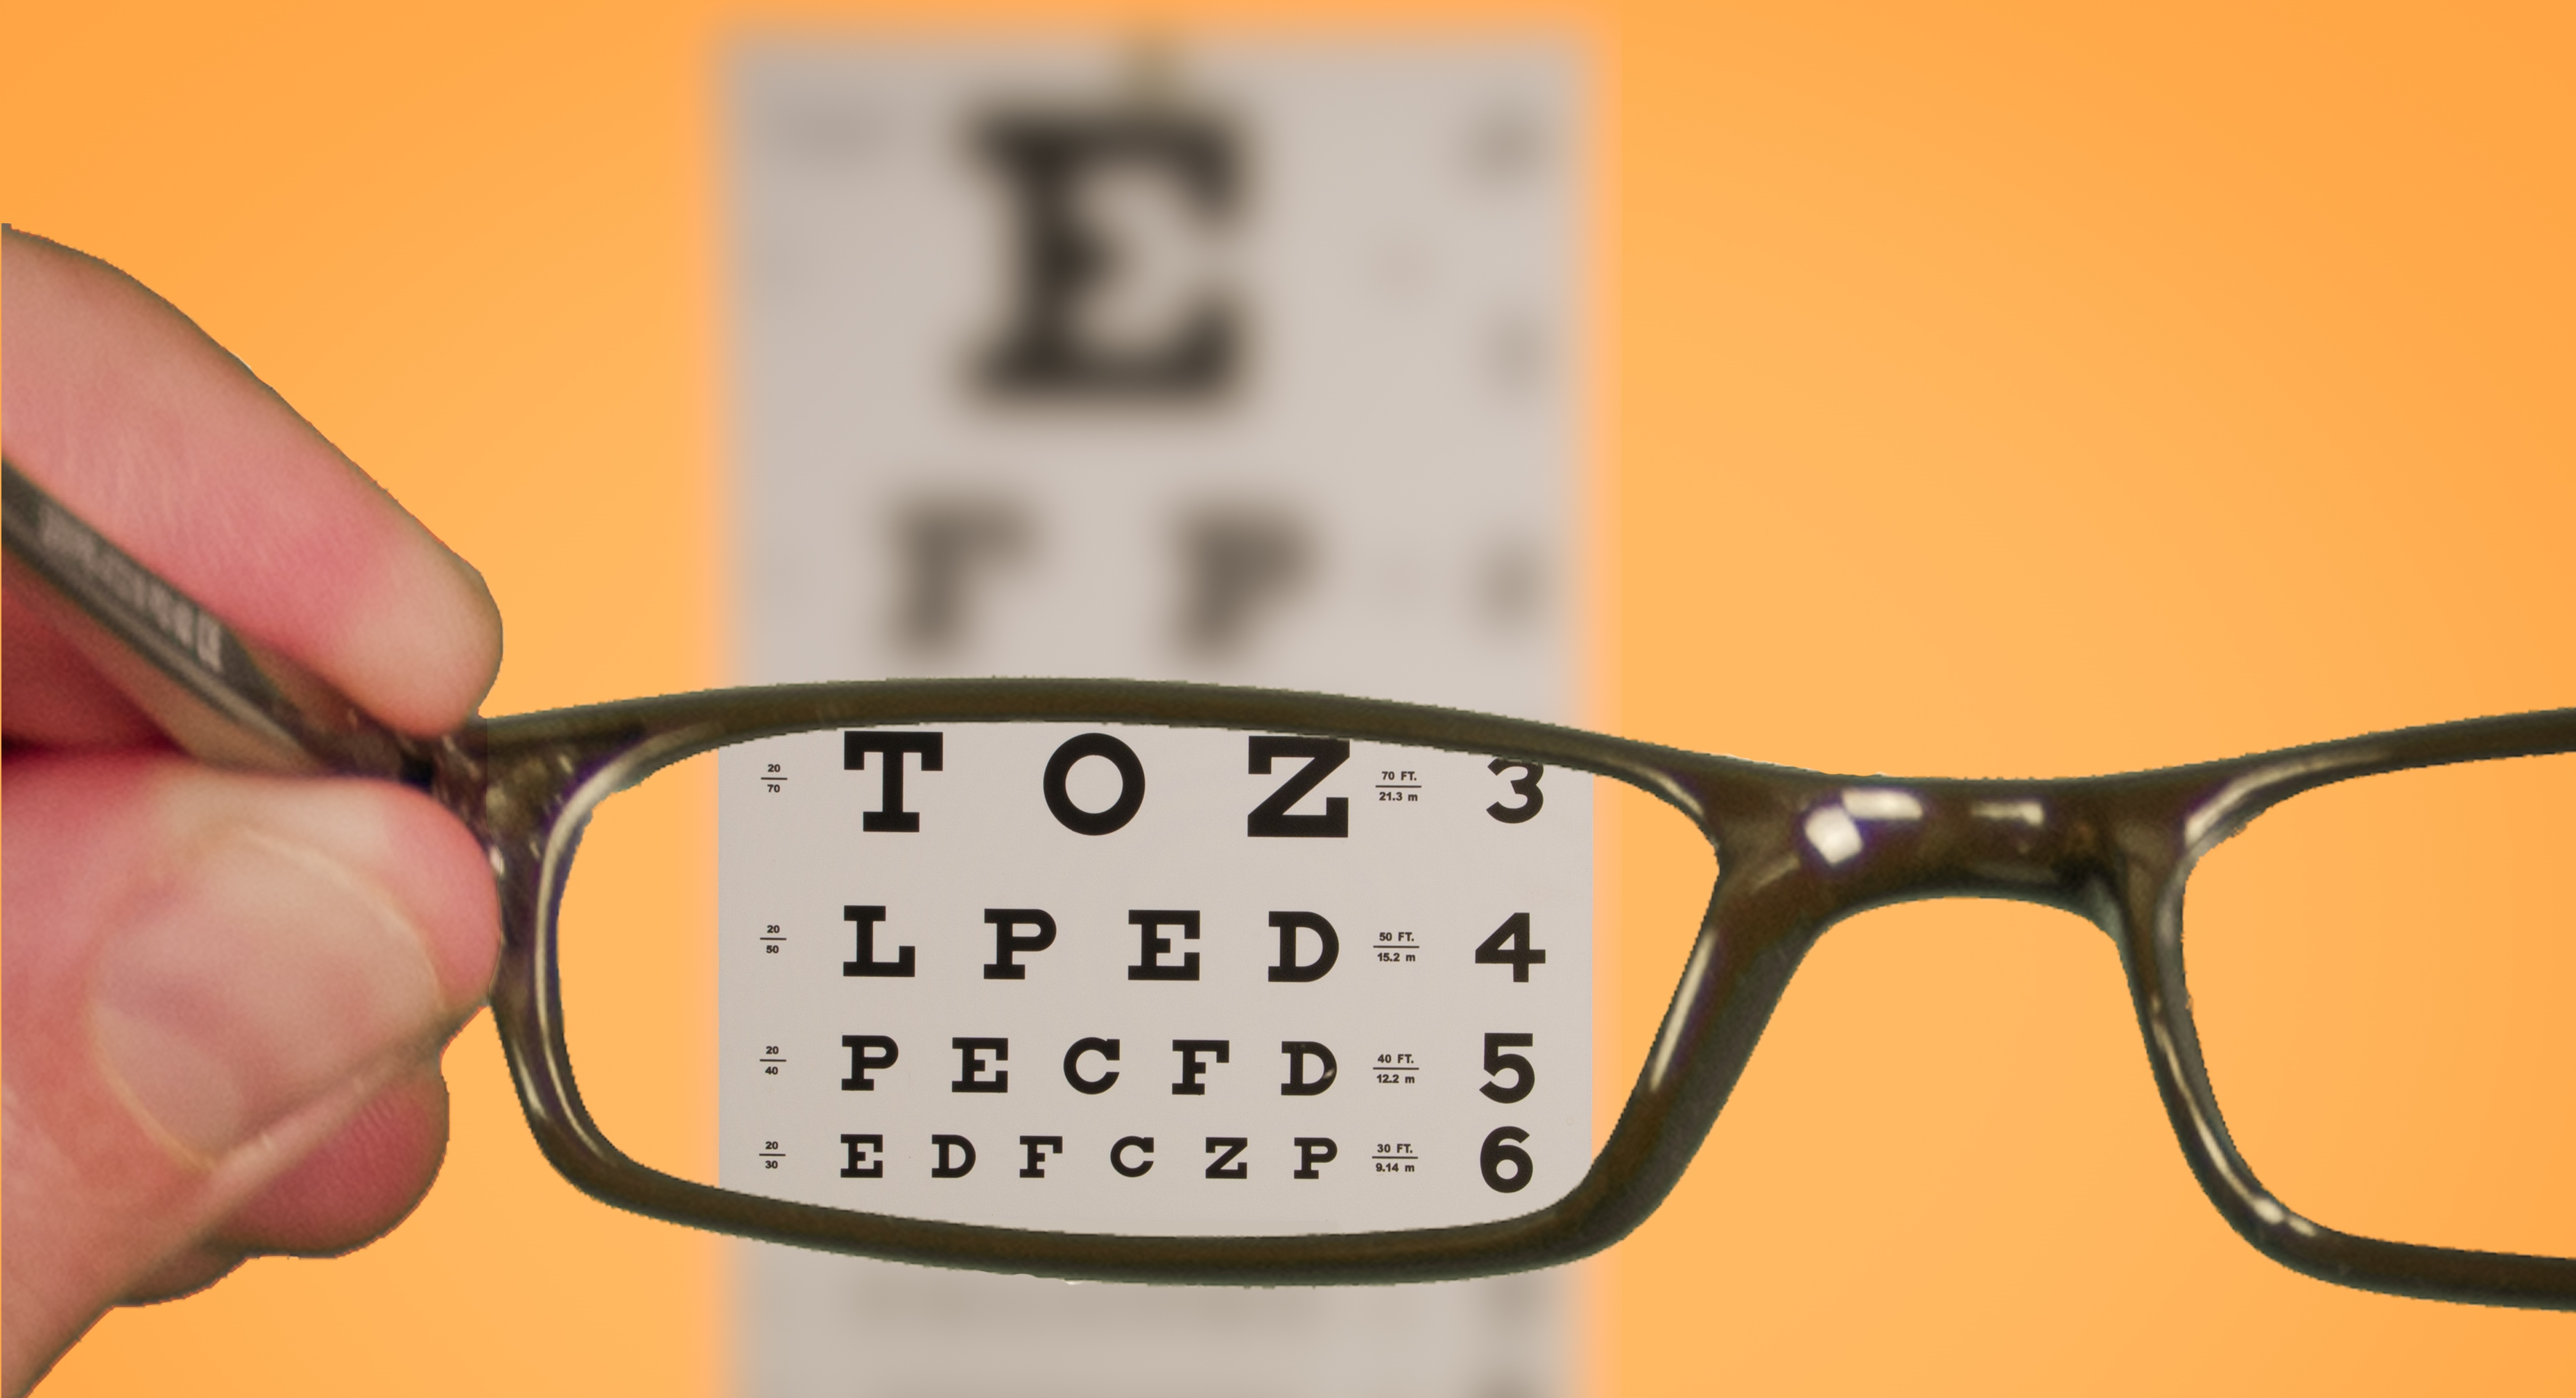 Low vision and magnification aids